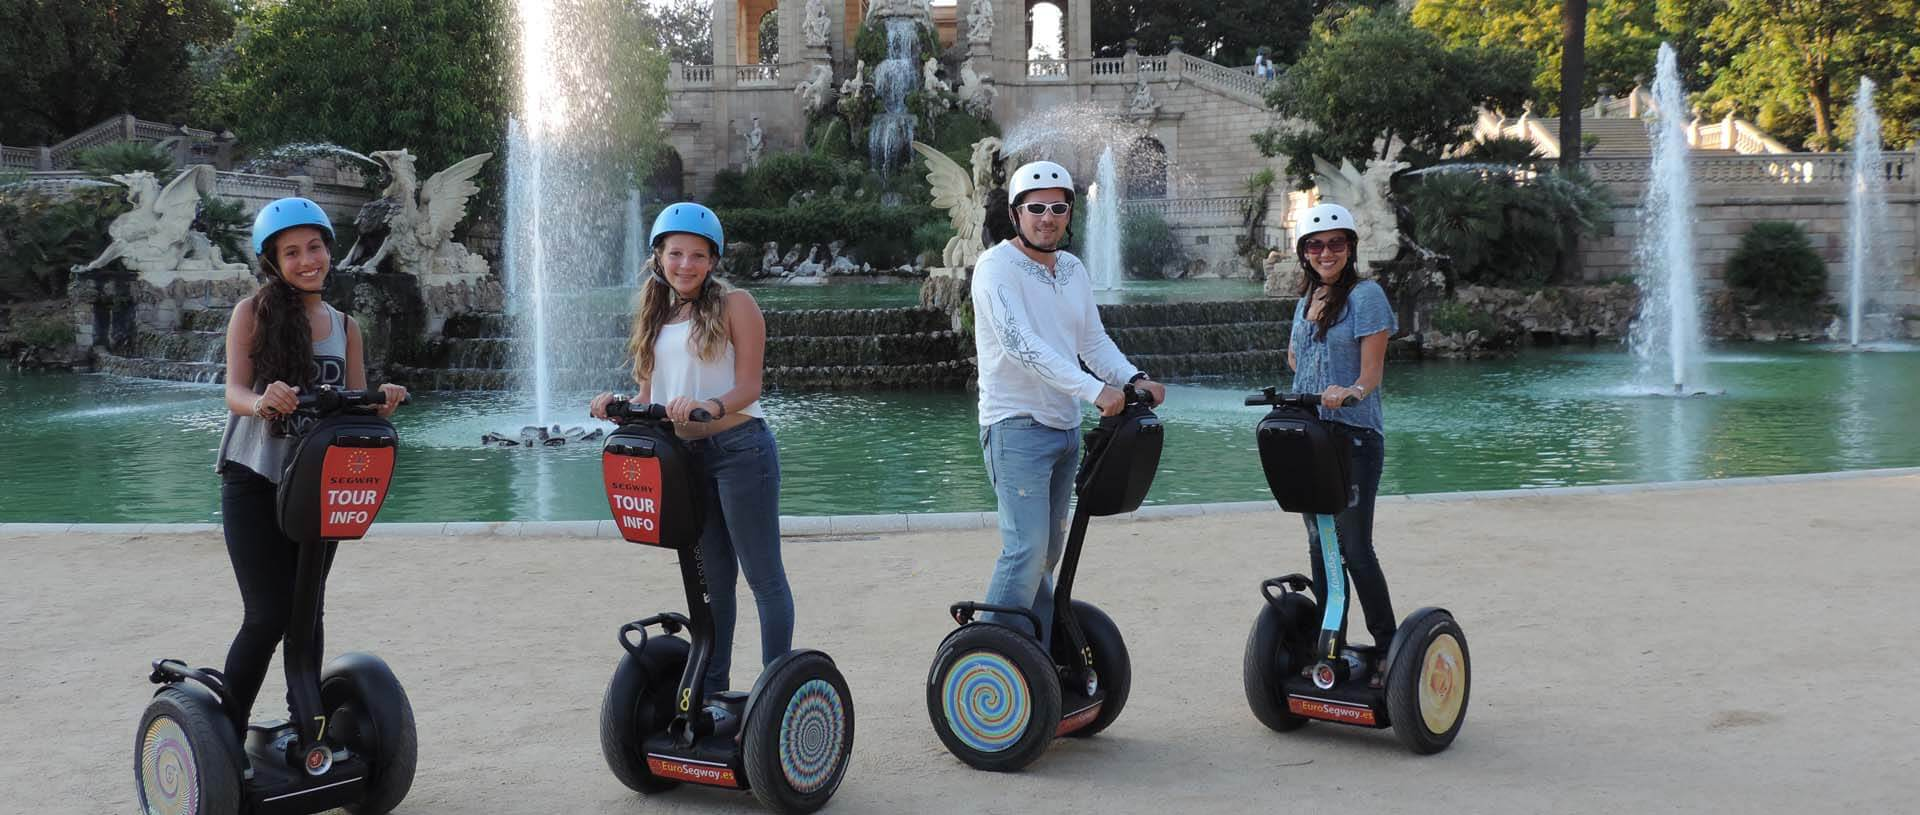 Amazing segway tour in Barcelona